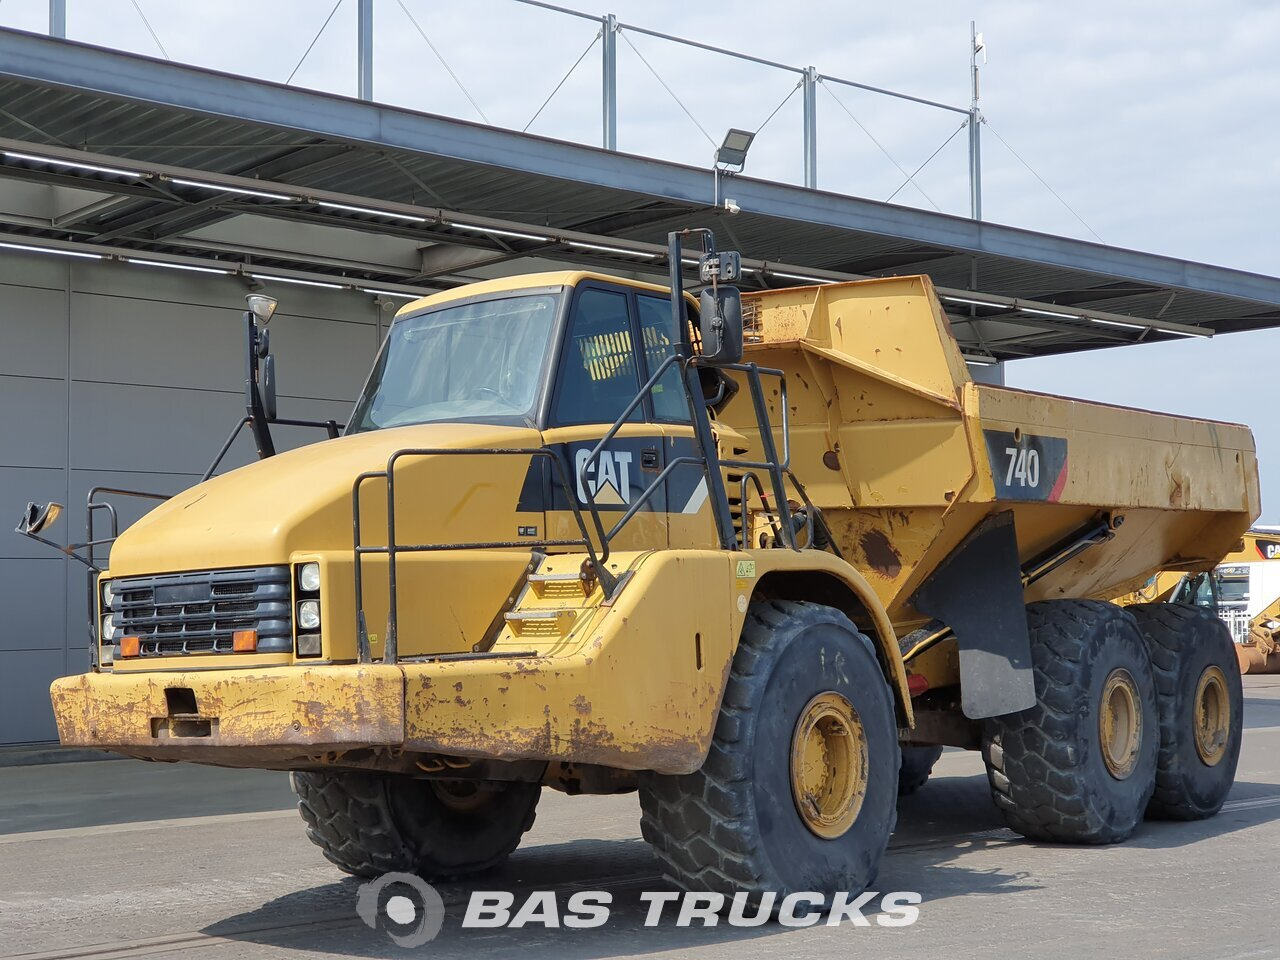 For sale at BAS Machinery: Caterpillar 740 6X6 01/2008